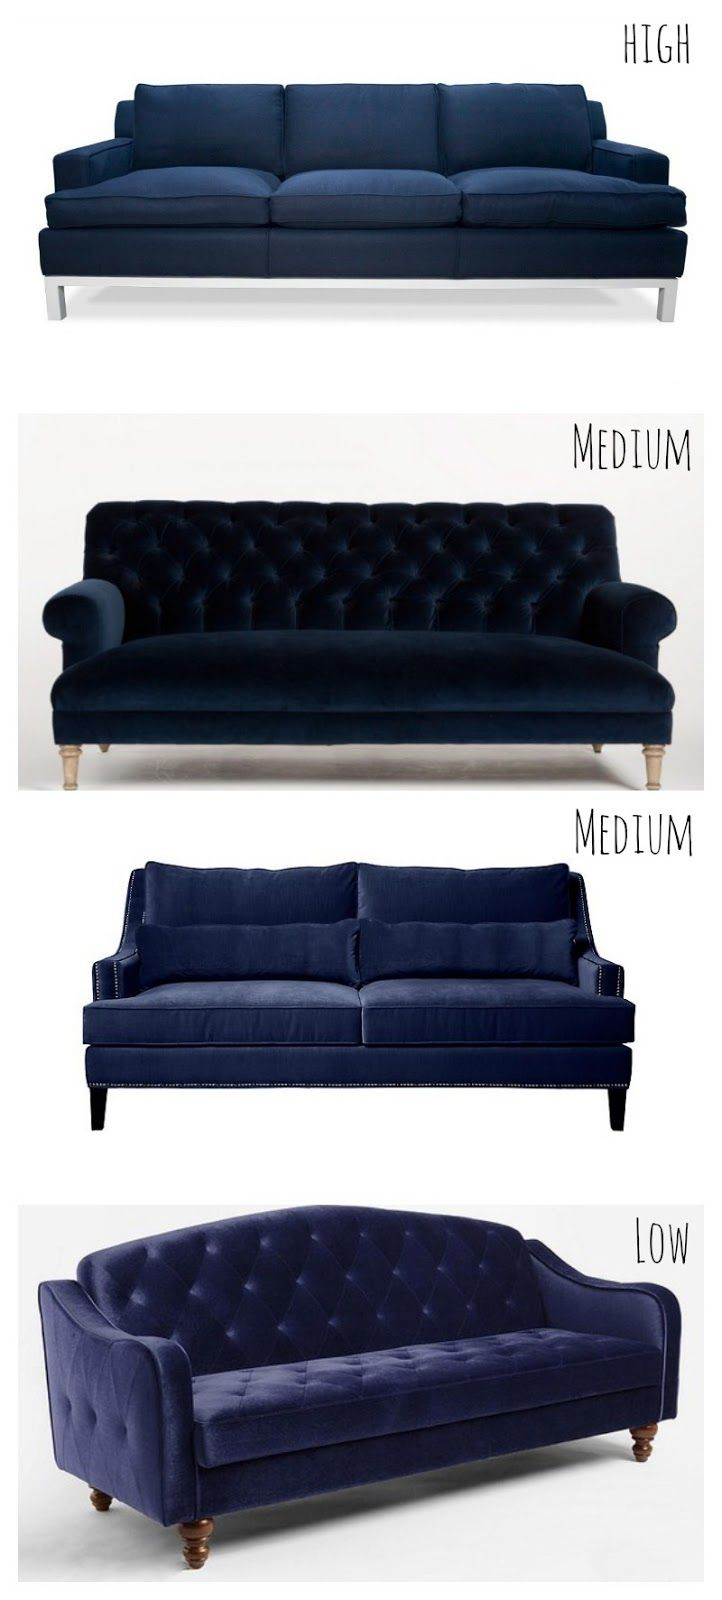 Navy blue sofa couches at an array of prices